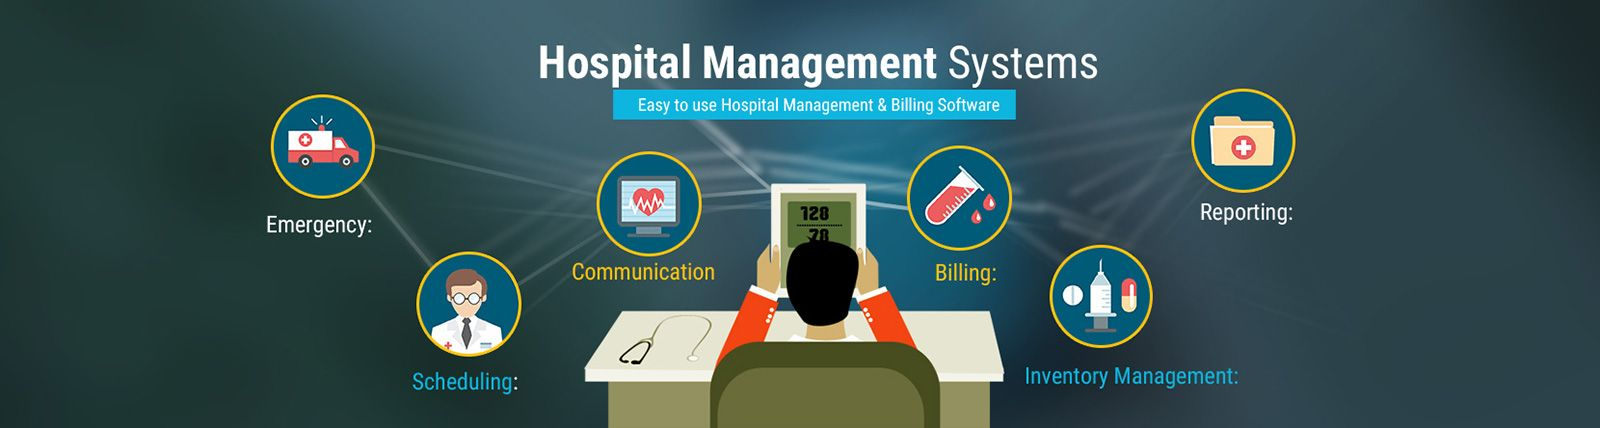 Zarzoob Hospital Management Information System Software